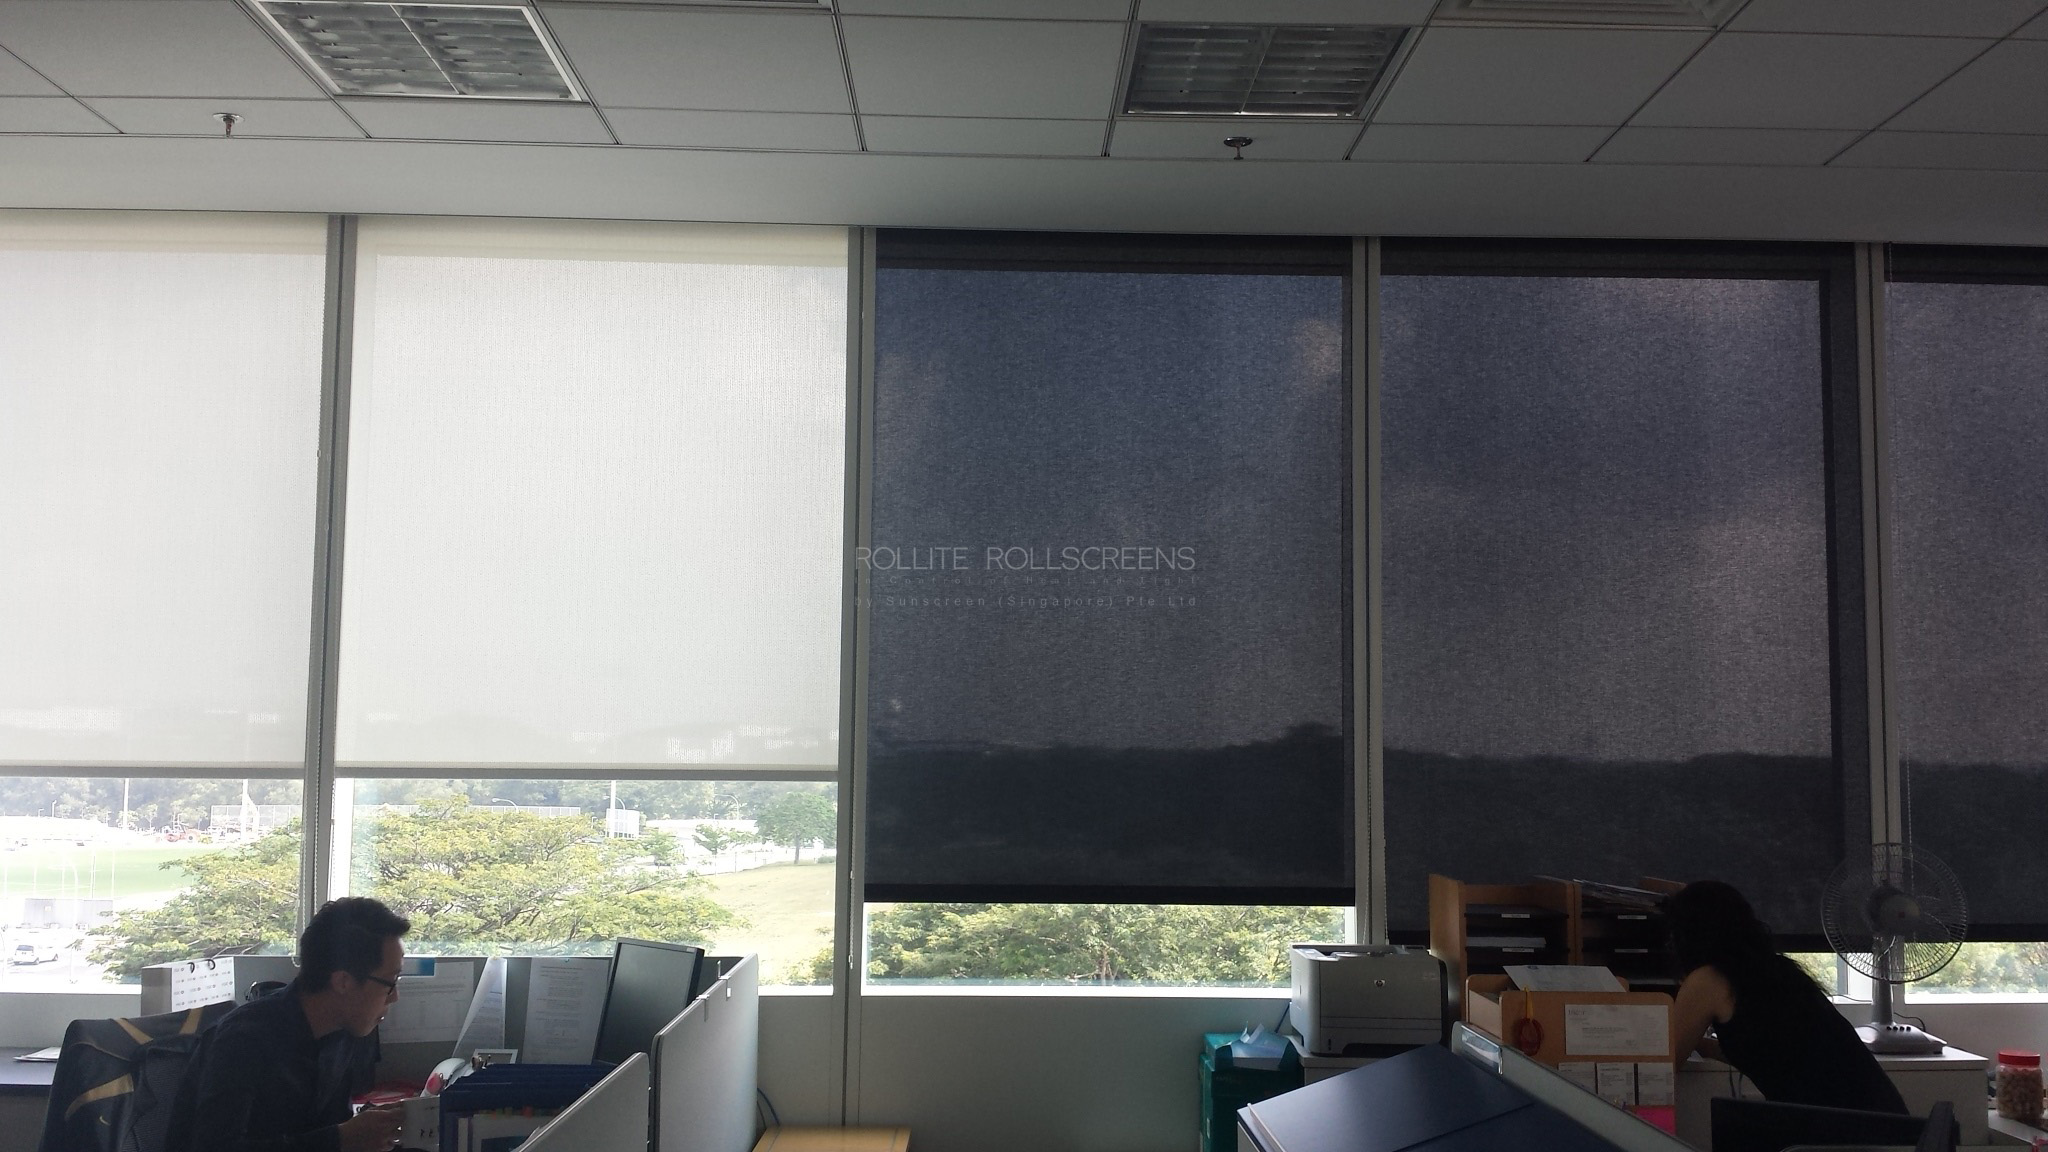 Sunscreen Singapore_Rollite Rollscreens 11-1